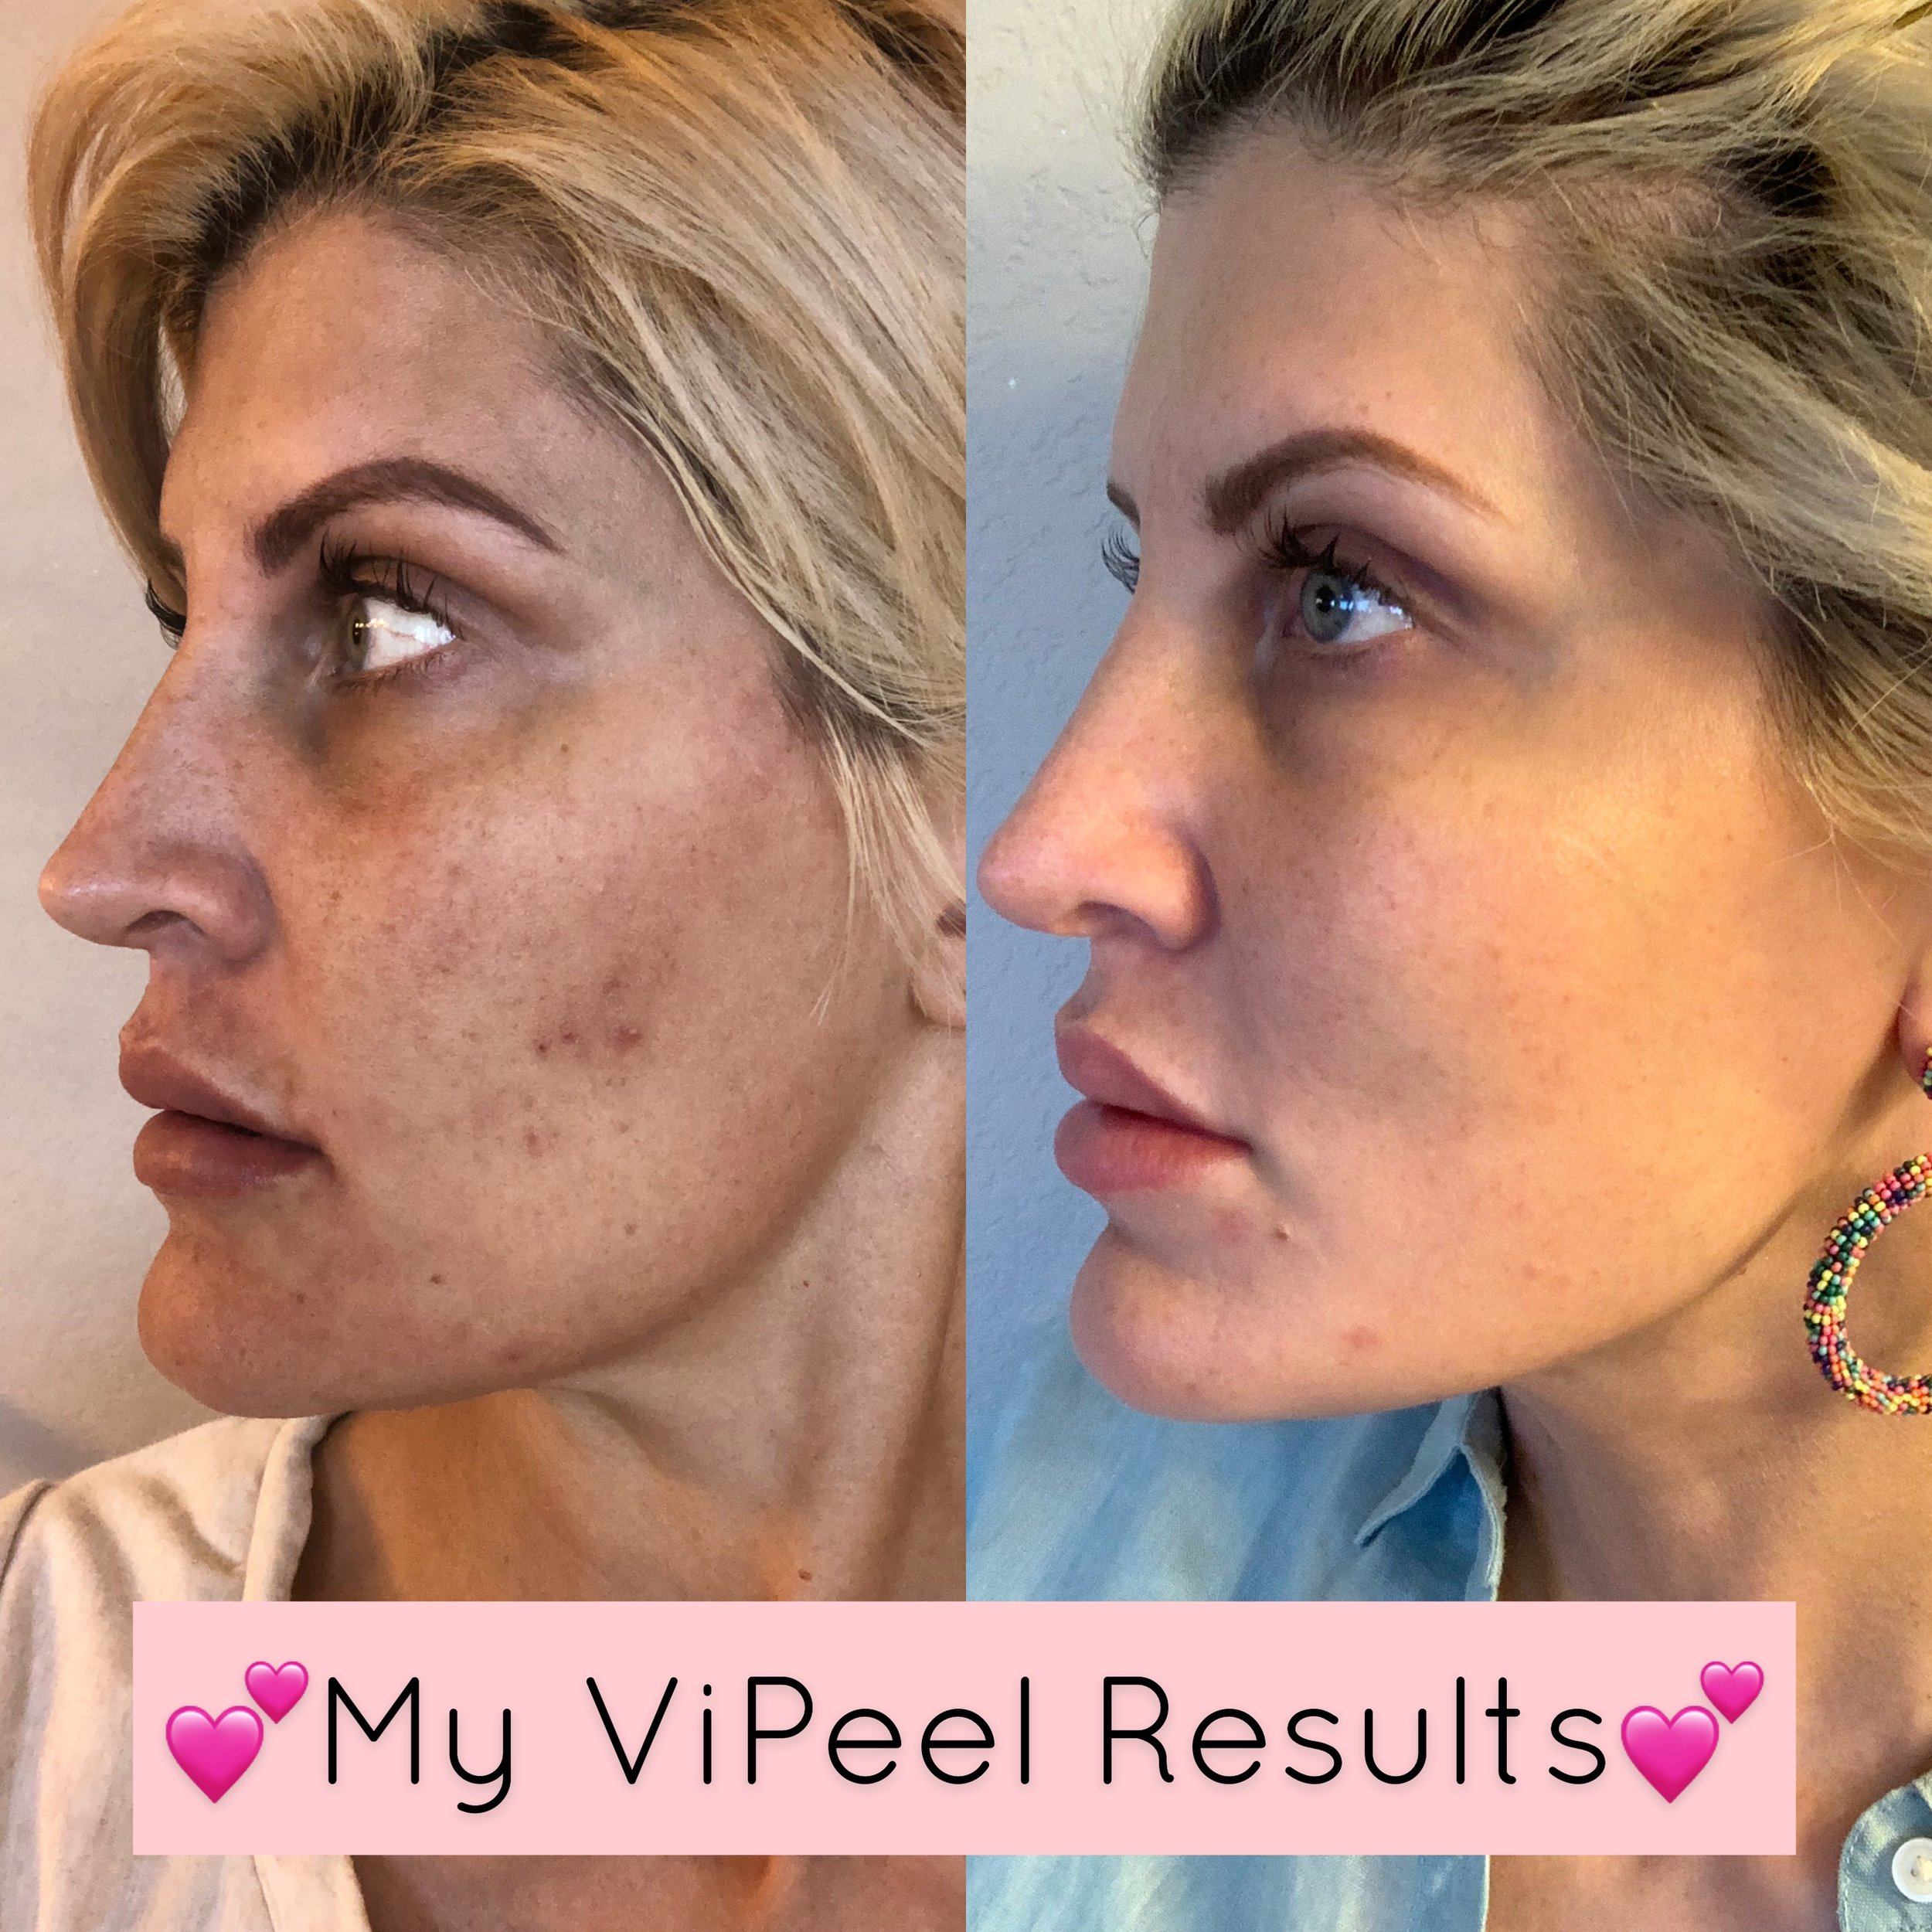 Our very own Jenny Garland's ViPeel results, before and two weeks after treatment.